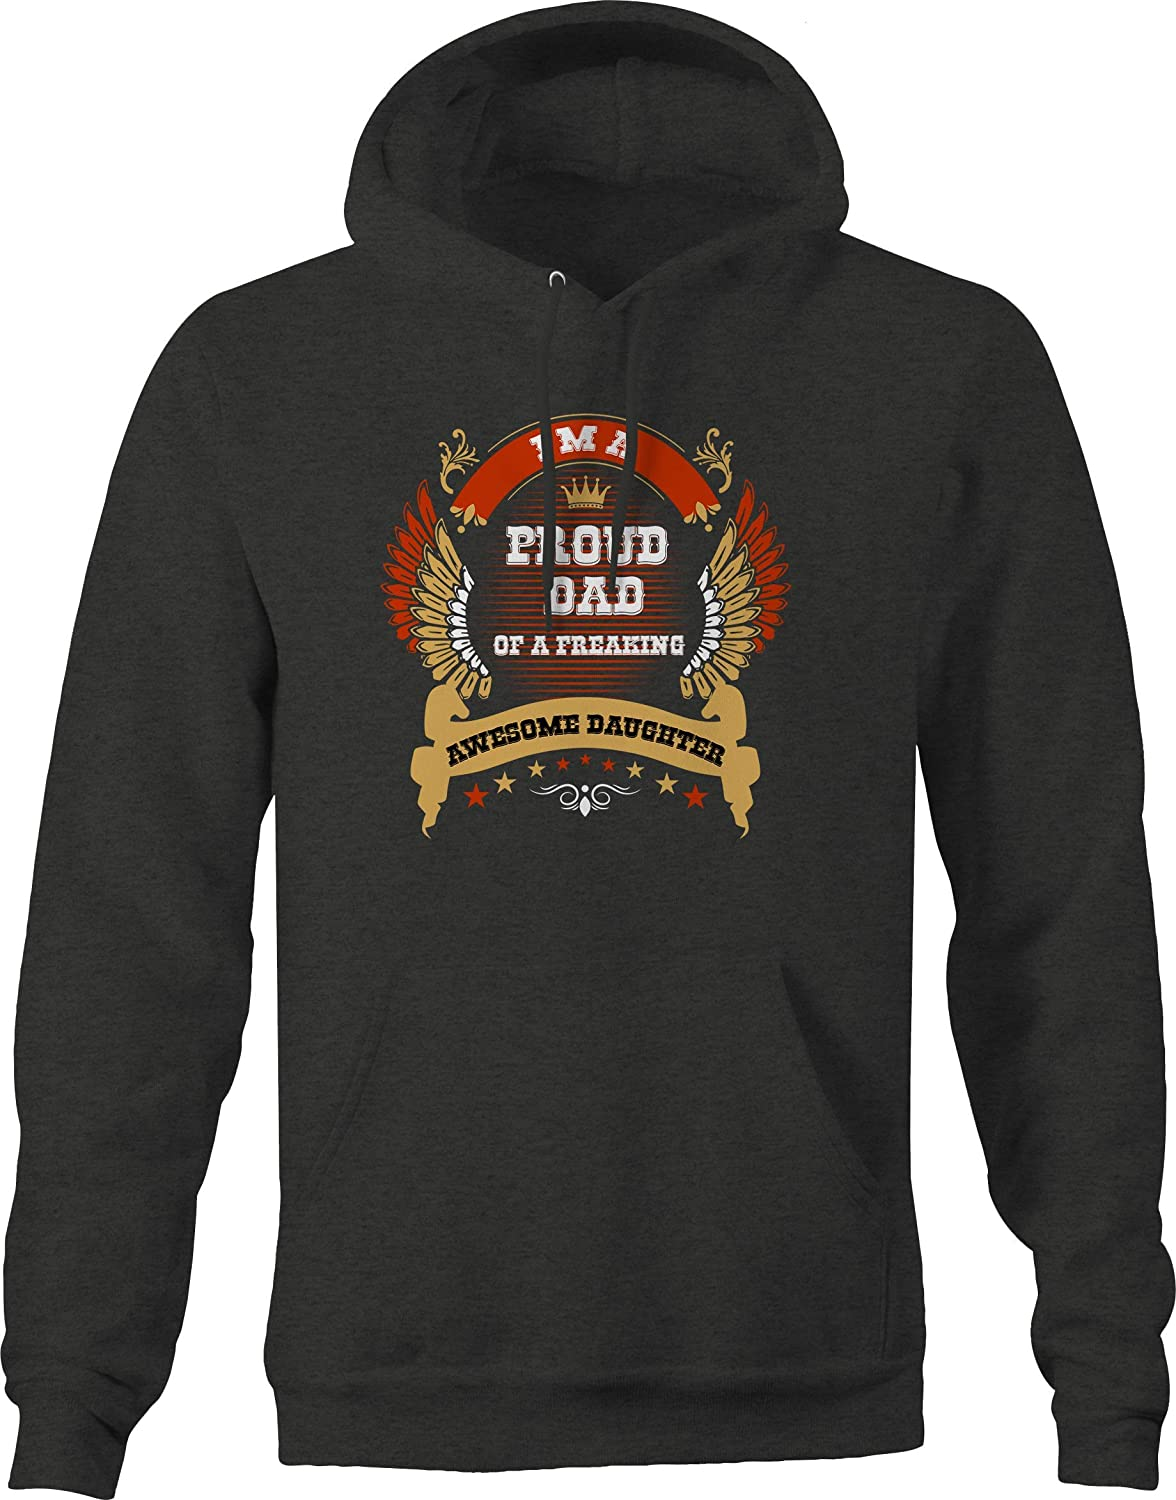 M22 Proud Dad of a Freaking Awesome Daughter Sweatshirt